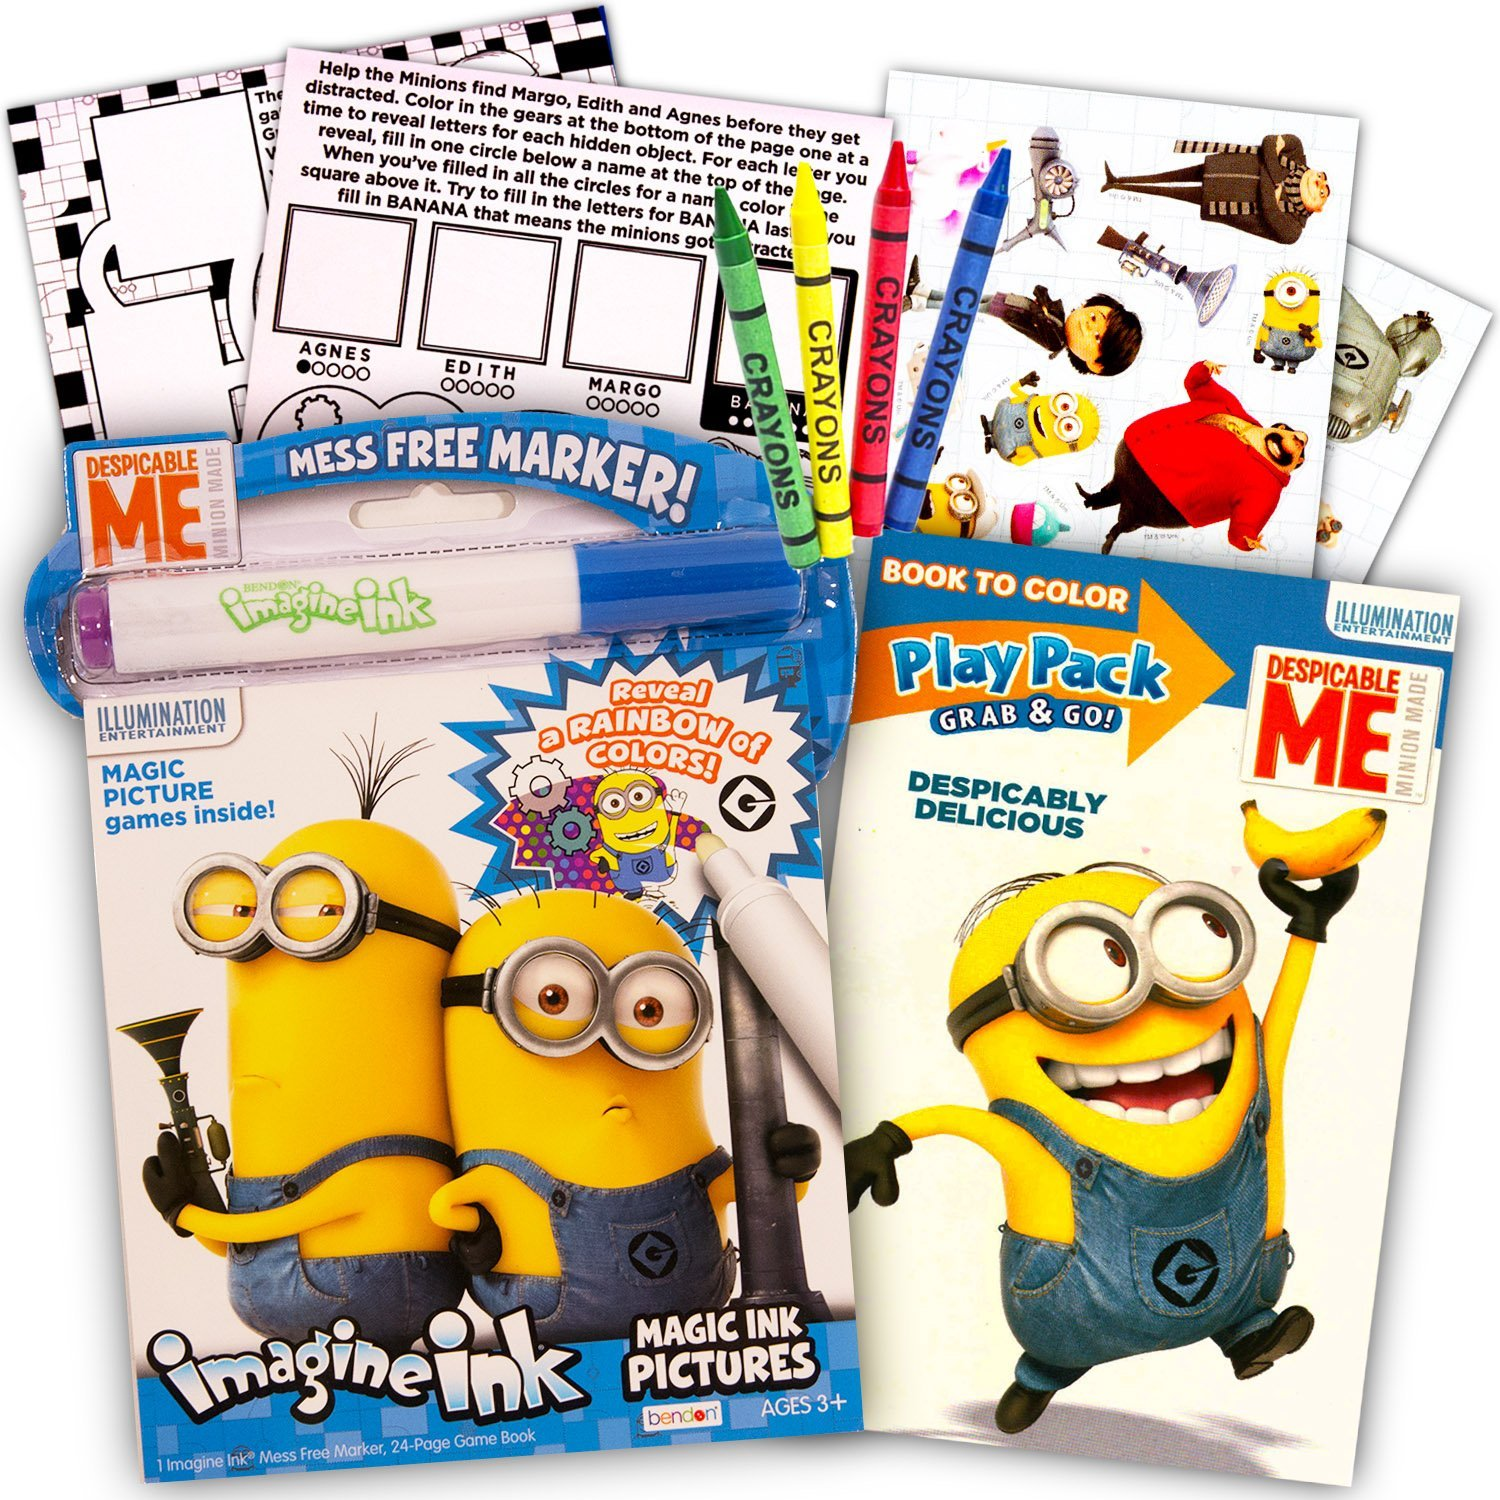 Despicable Me Minions Magic Ink Book and Play Set (Imagine Ink Book, Mess Free Marker and Play Pack)